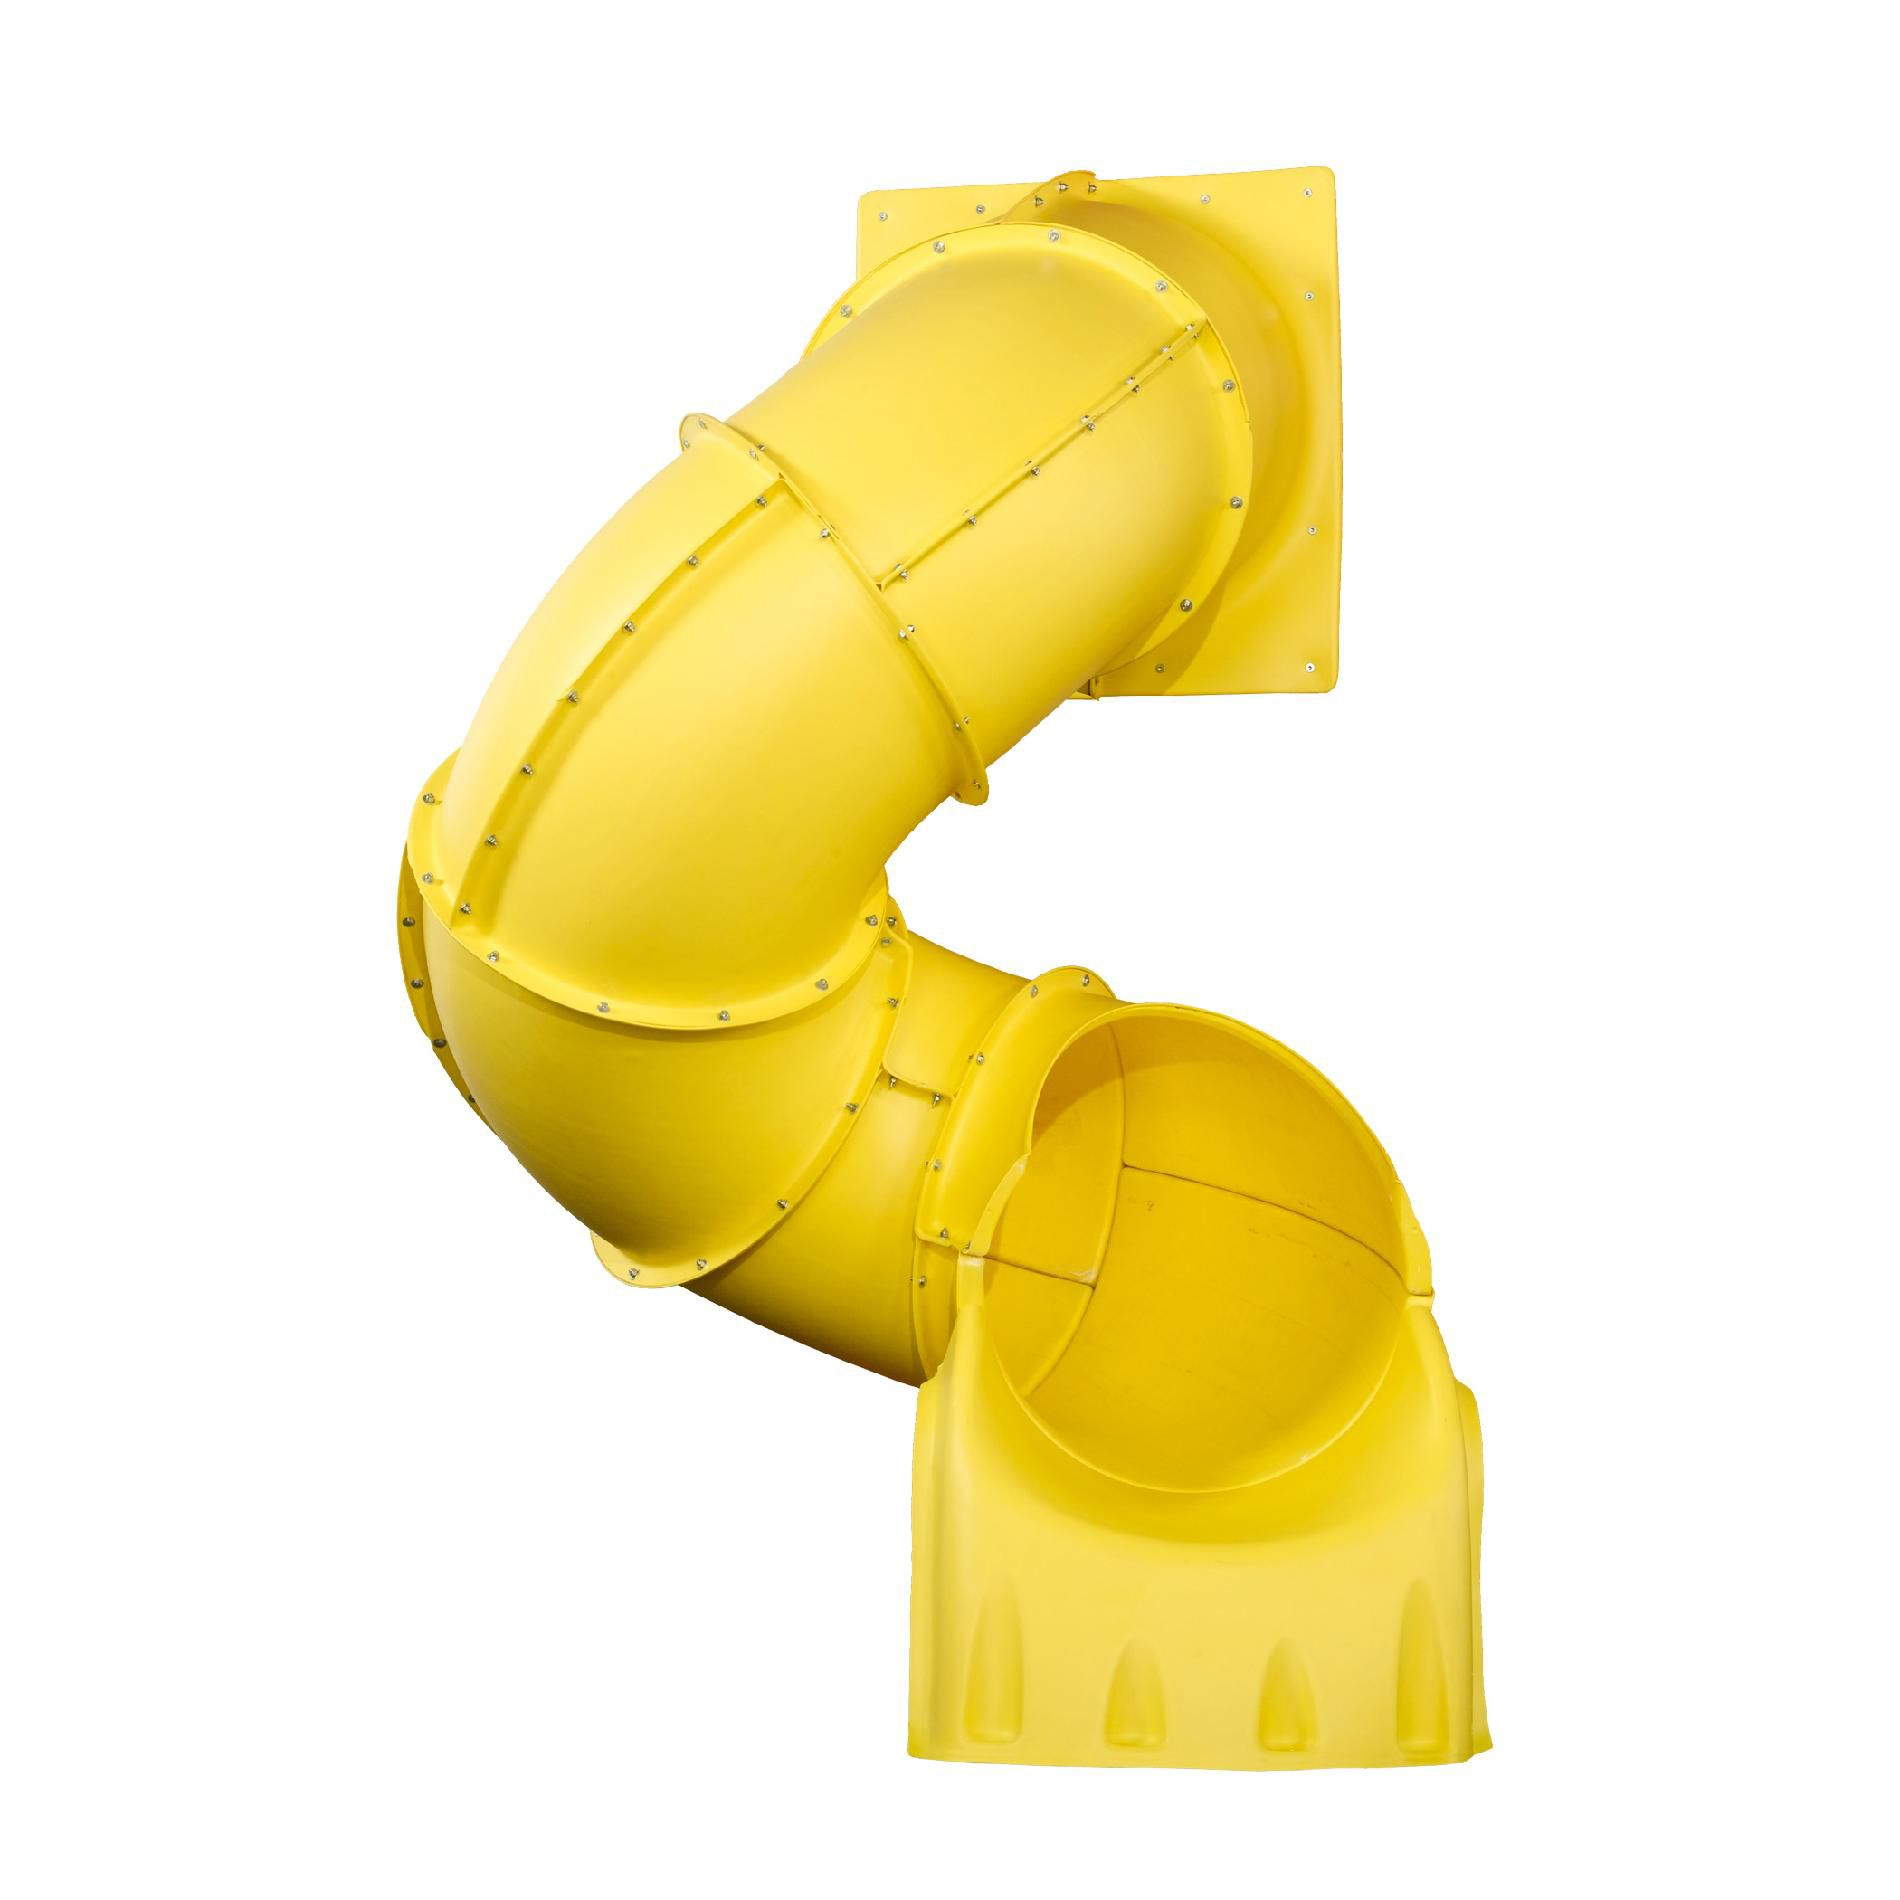 5 Ft. Turbo Tube Slide - Yellow